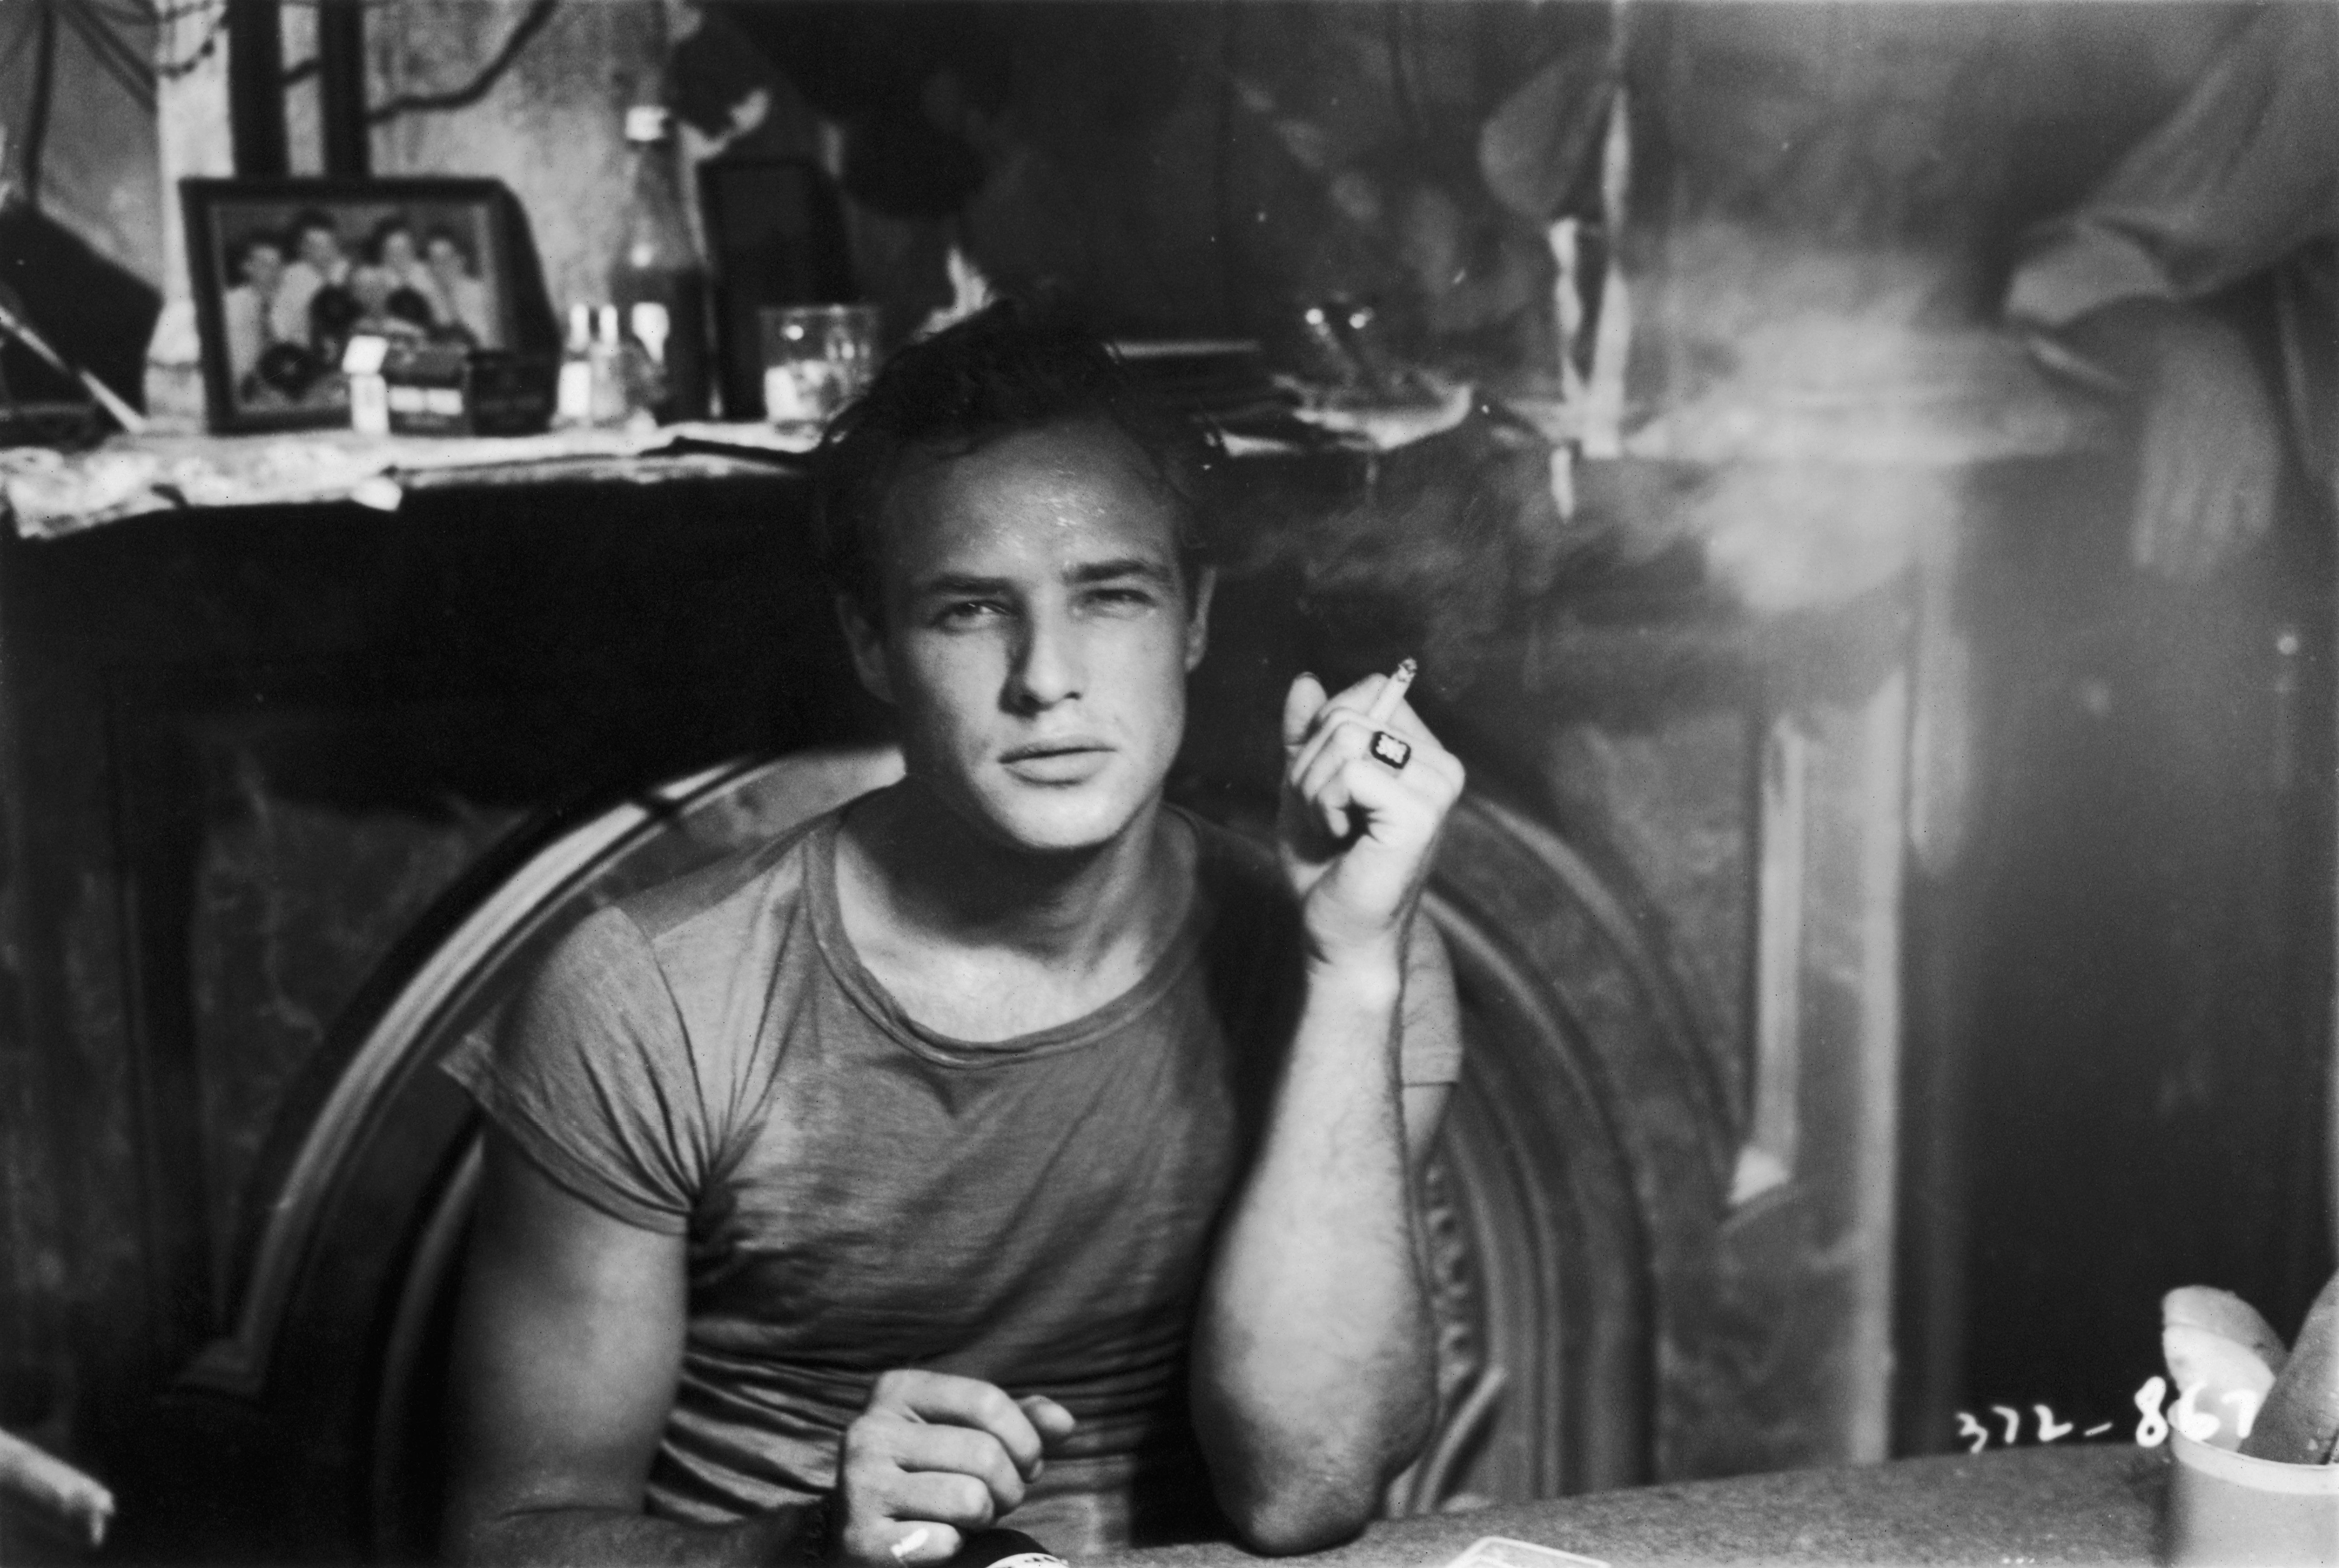 Marlon Brando in a scene from  'A Streetcar Named Desire', adapted from the play by Tennessee Williams and directed by Elia Kazan for Charles K Feldman Group/Warner Brothers.   (Photo by Hulton Archive/Getty Images)